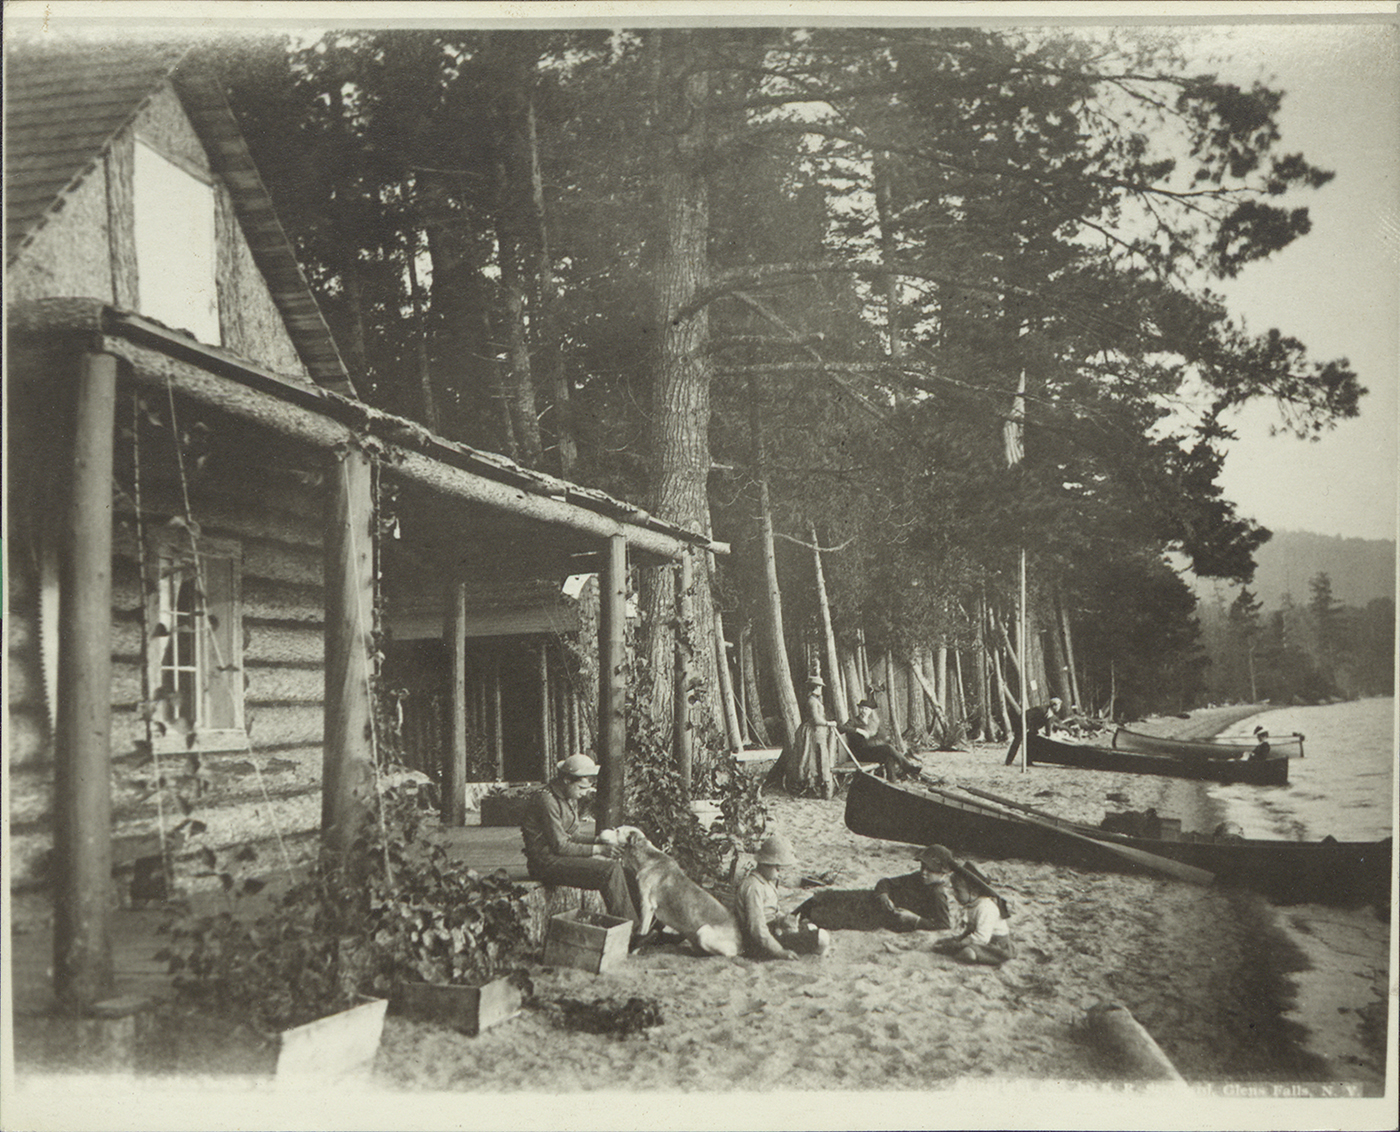 Campers on Golden Beach on Raquette Lake, NY, circa 1900.